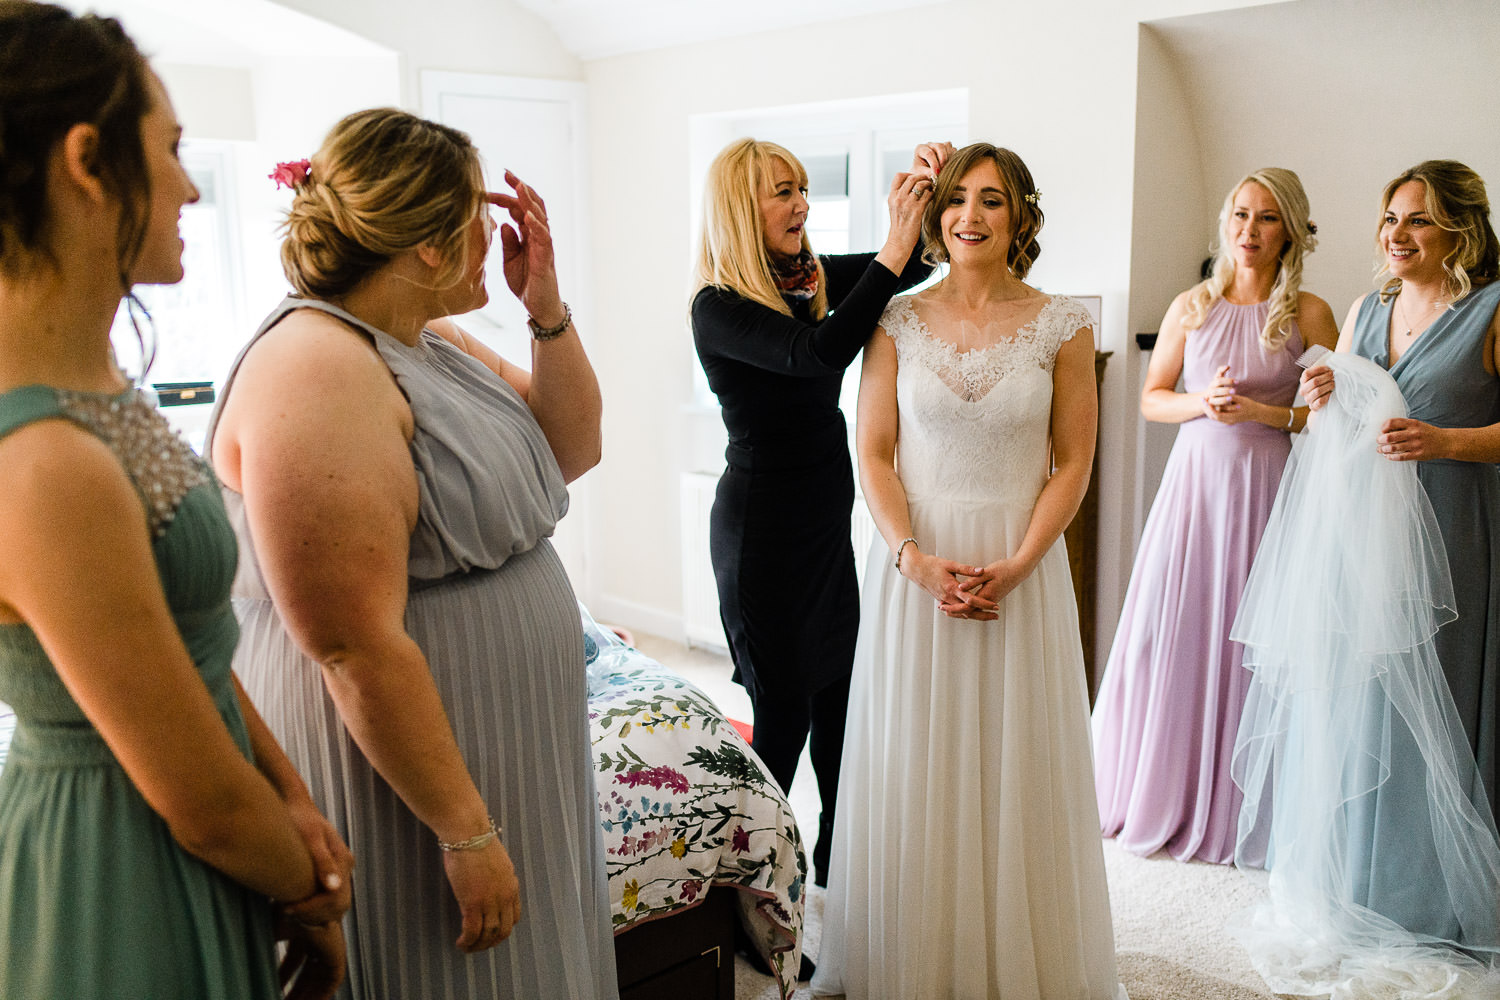 brides mum reaction to dress